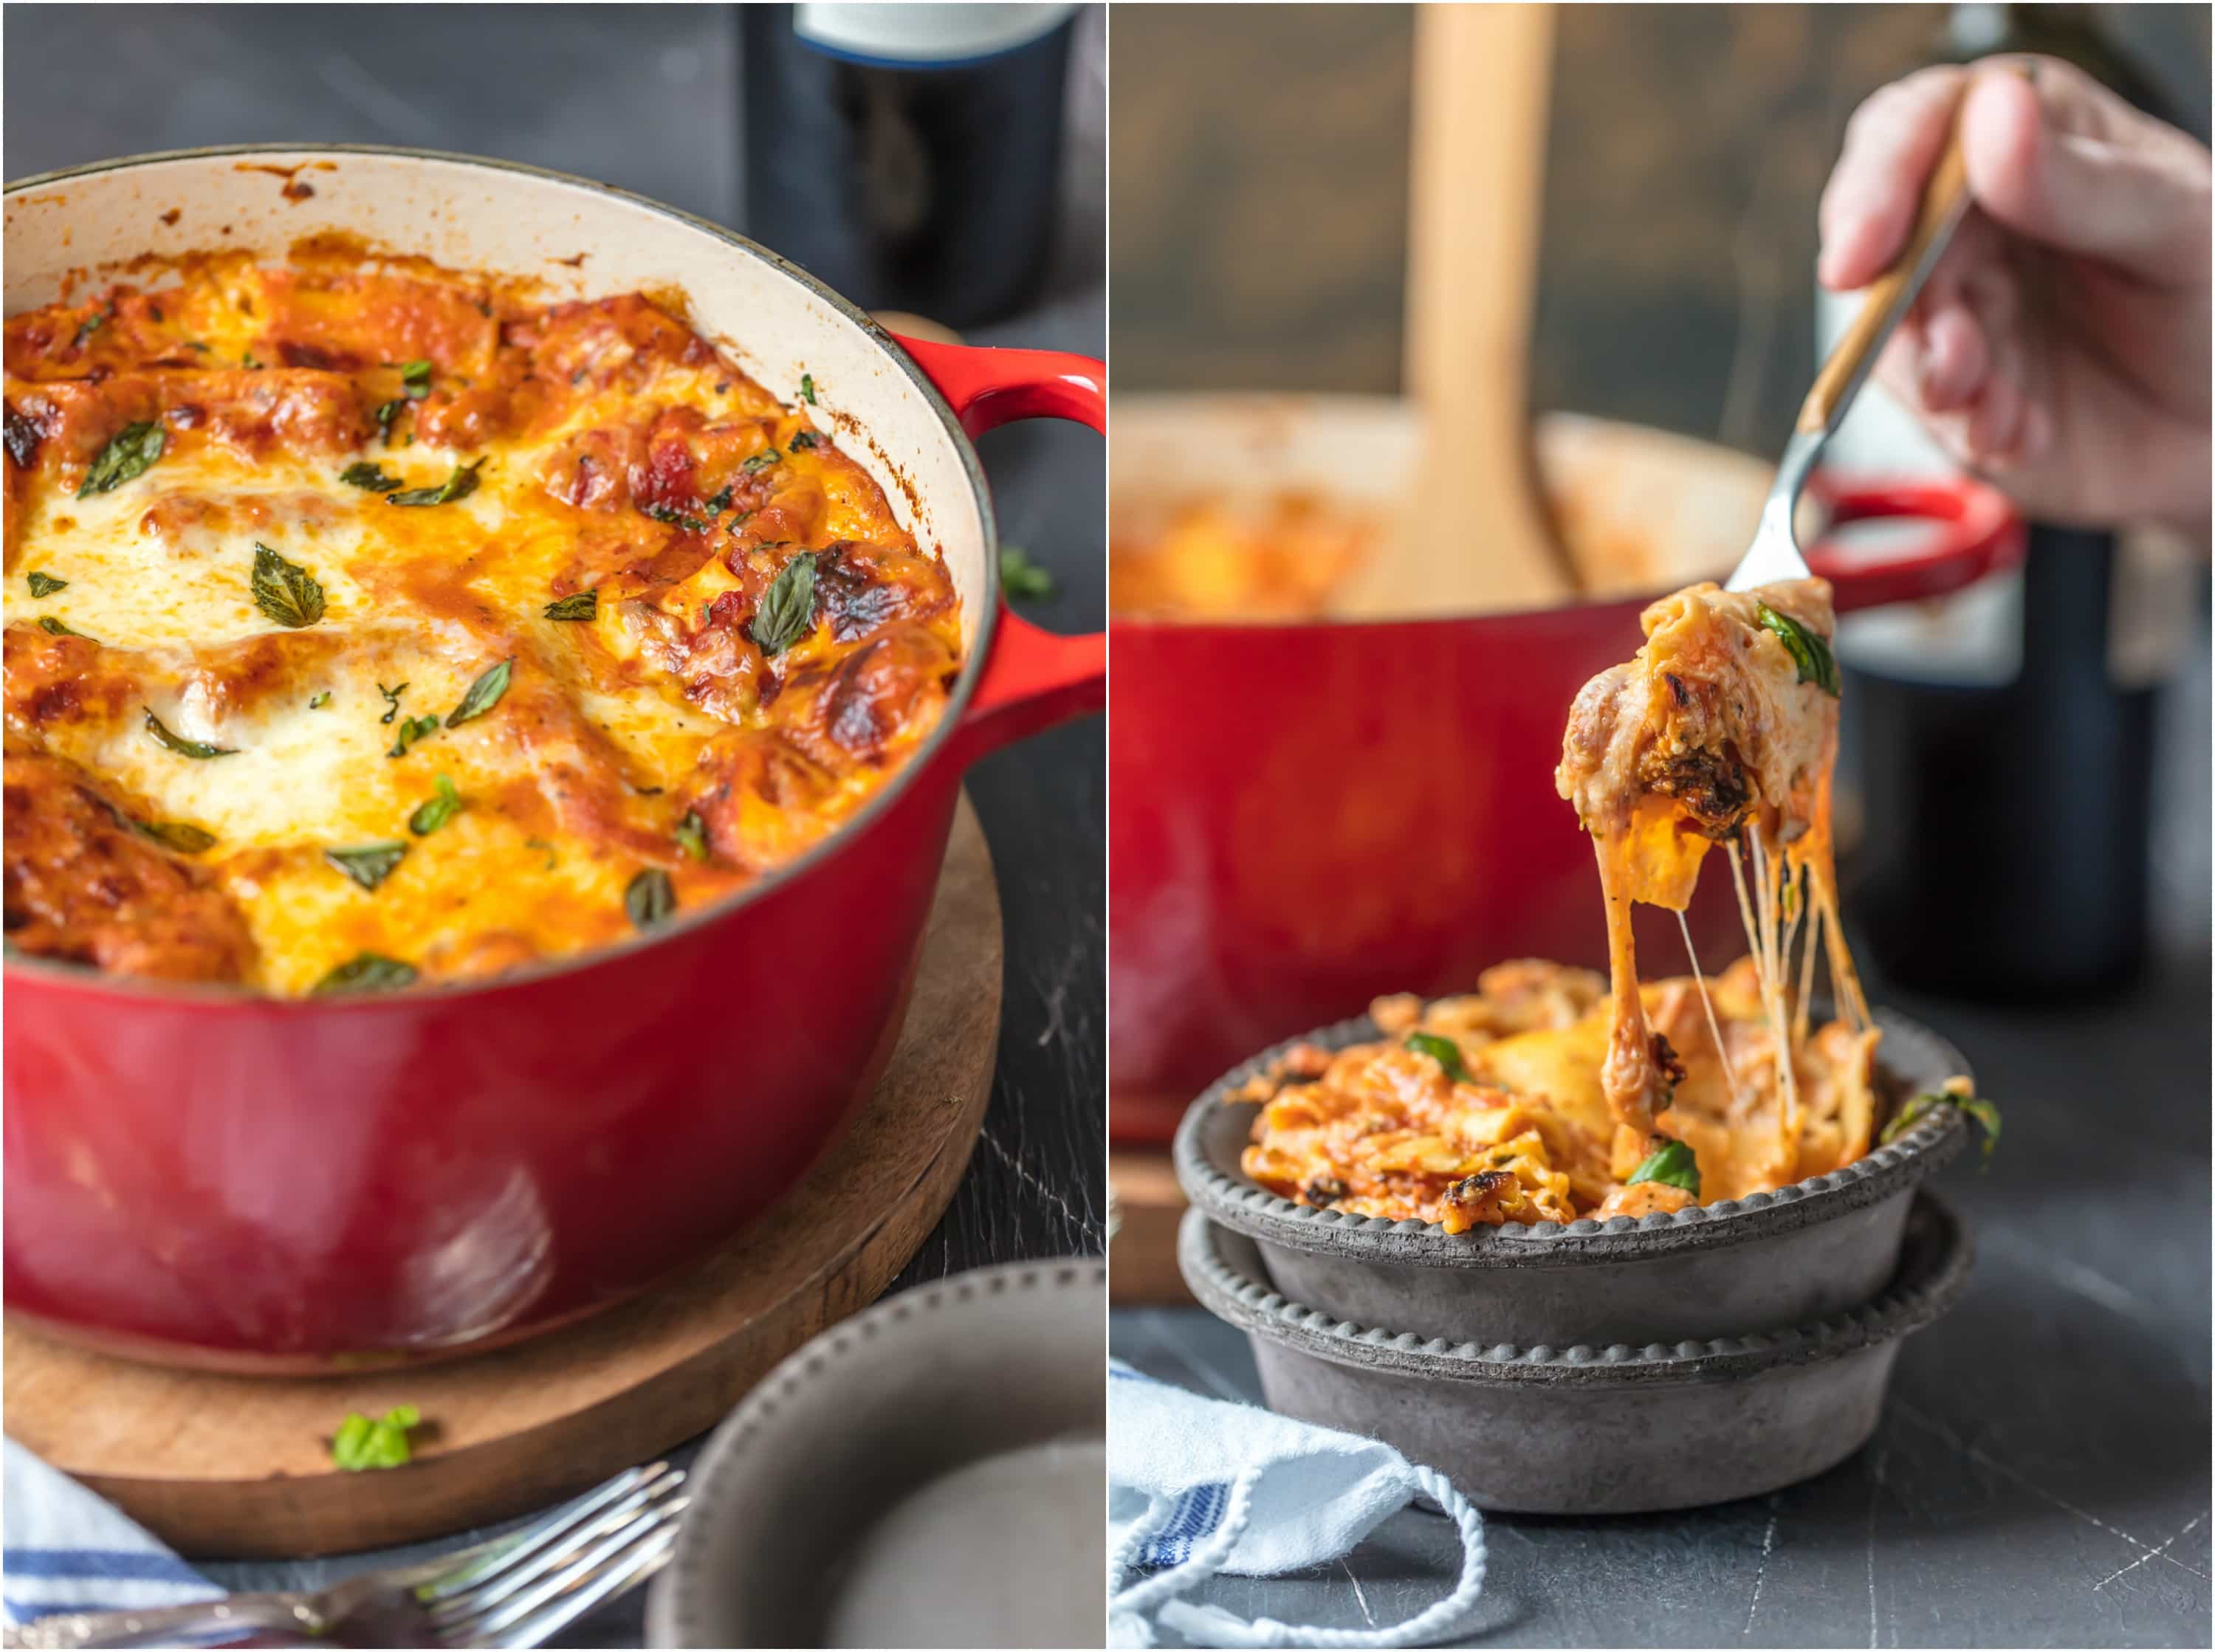 Dutch Oven Lasagna, or Stove Top Lasagna, will blow your mind! You'll never make a fully traditional lasagna recipe again after making this easy stove-top version. We are addicted to this melty, cheesy, and SIMPLE Italian recipe! This One Pot Lasagna is one of the BEST Dutch Oven Recipes we have tried.